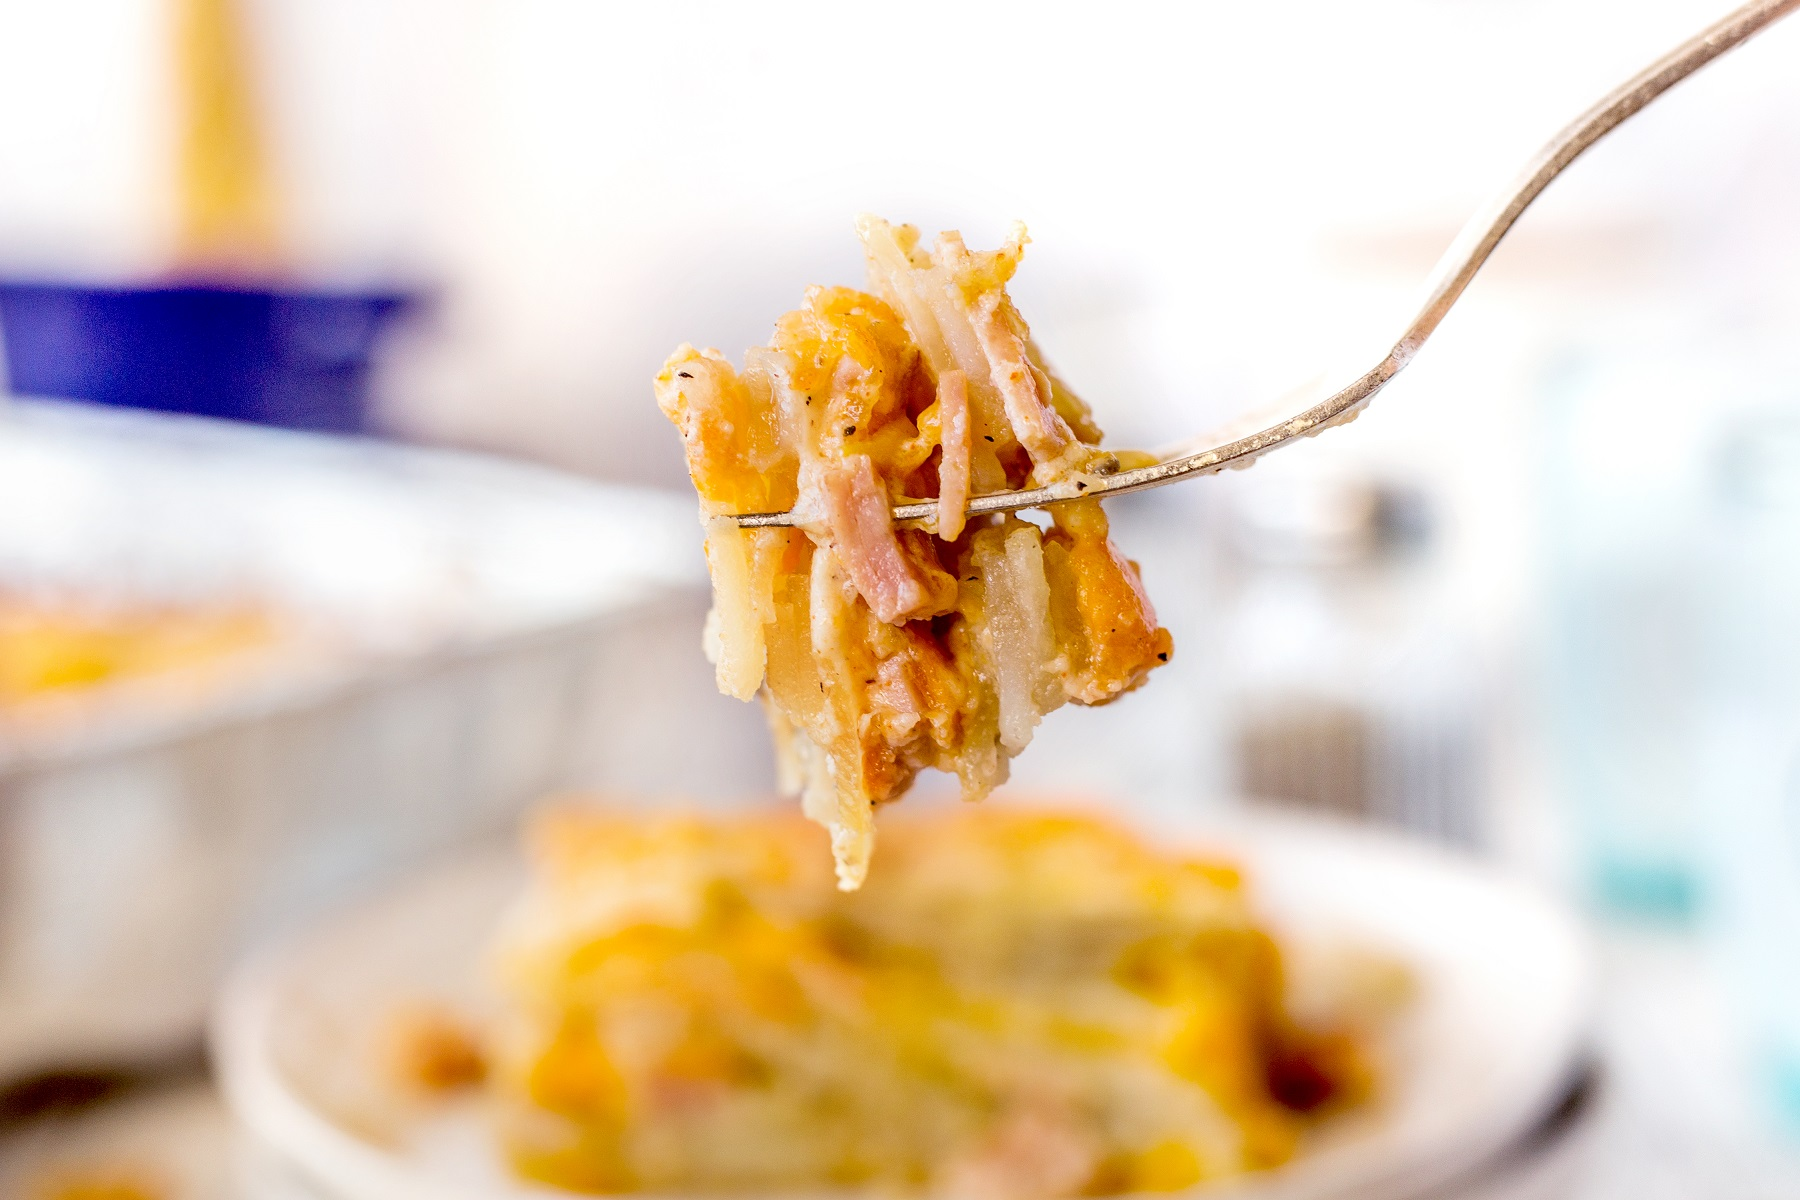 A bite of smoked scalloped potatoes on a fork